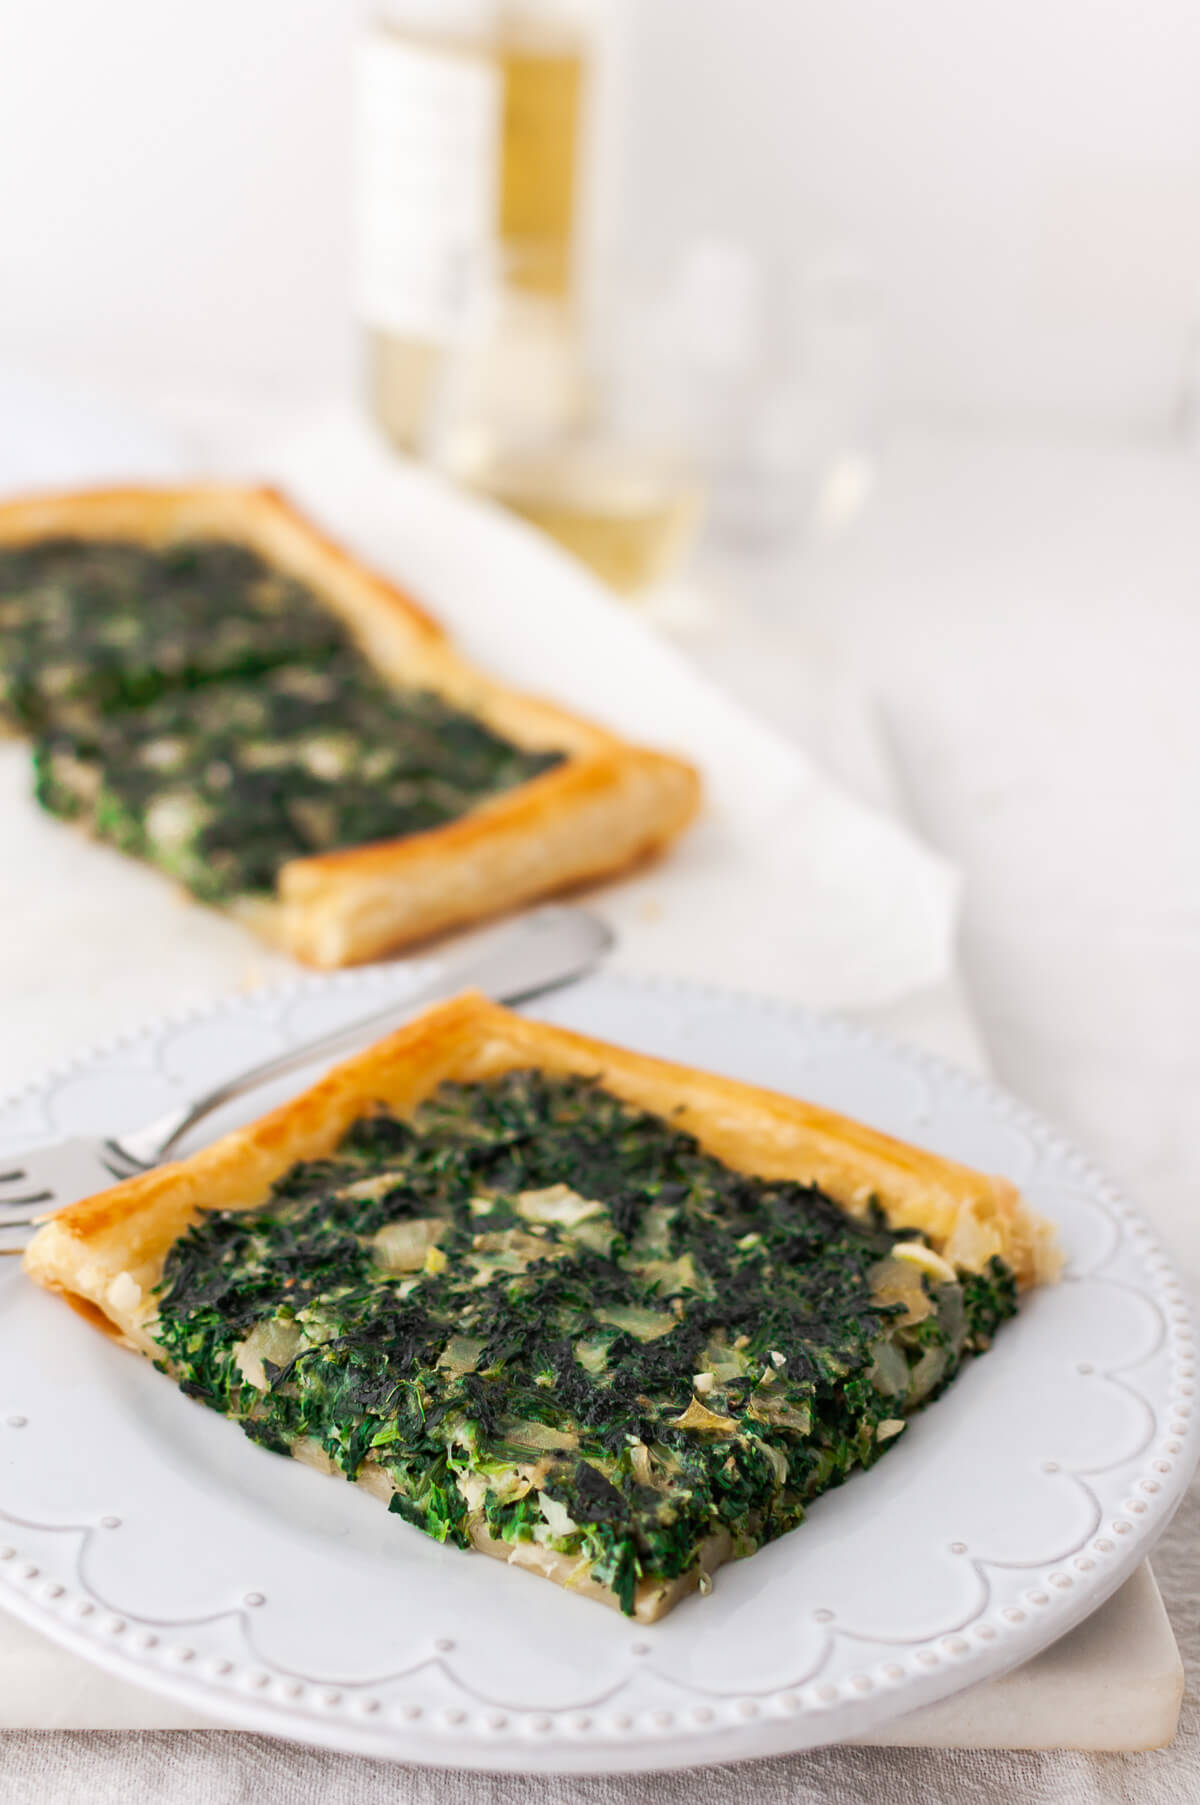 A piece of spinach tart on a white plate.